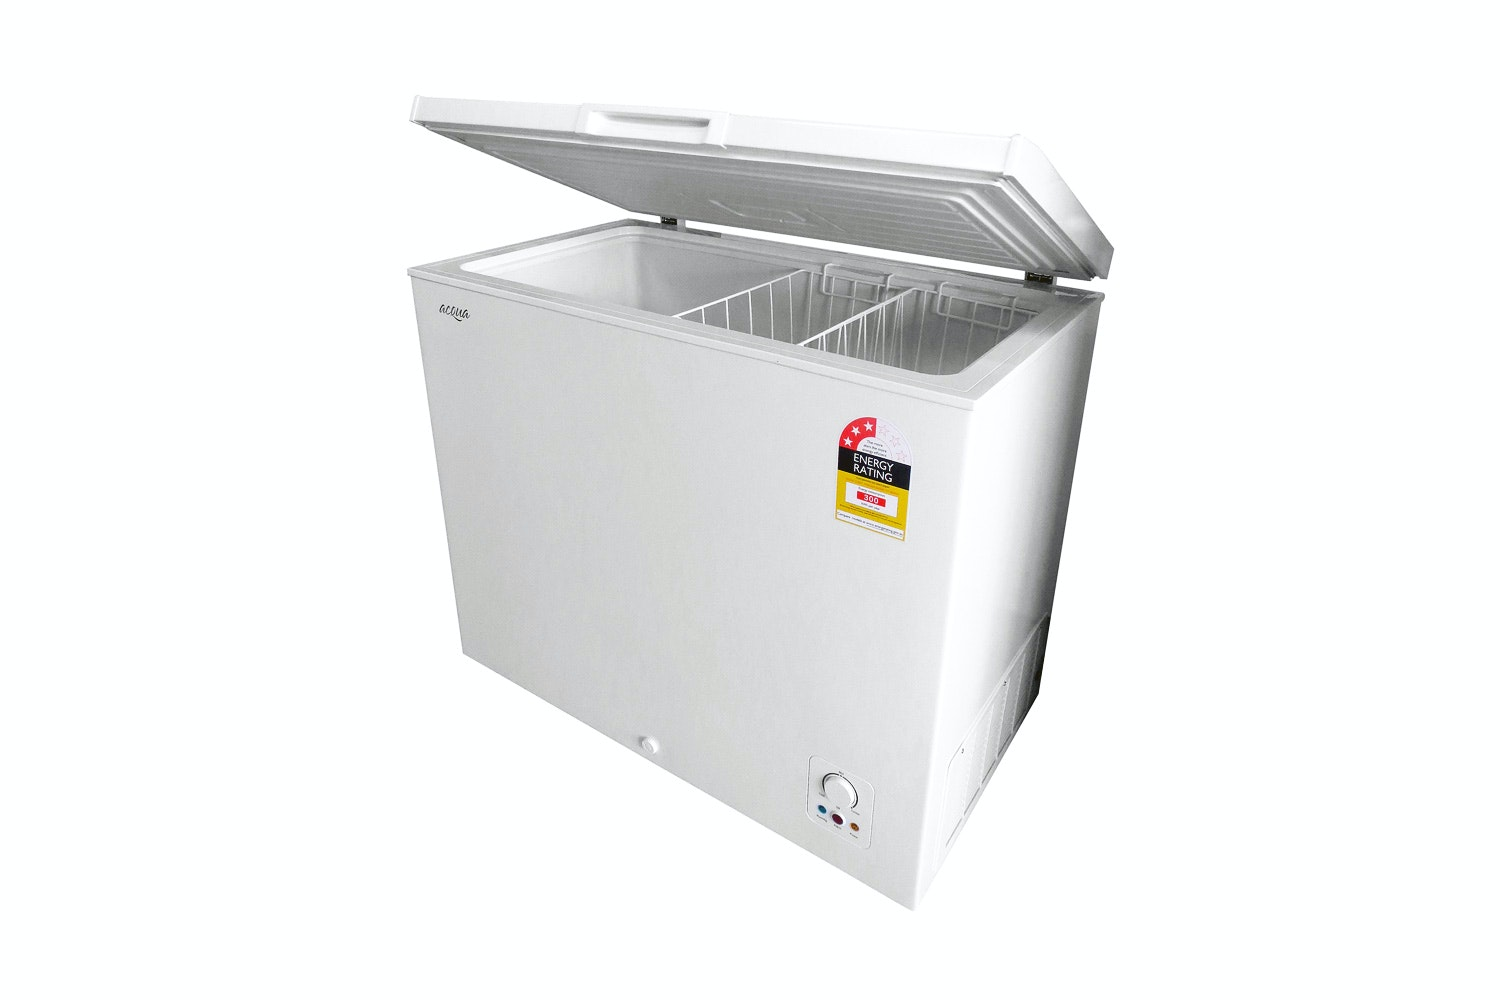 acqua 205l chest freezer